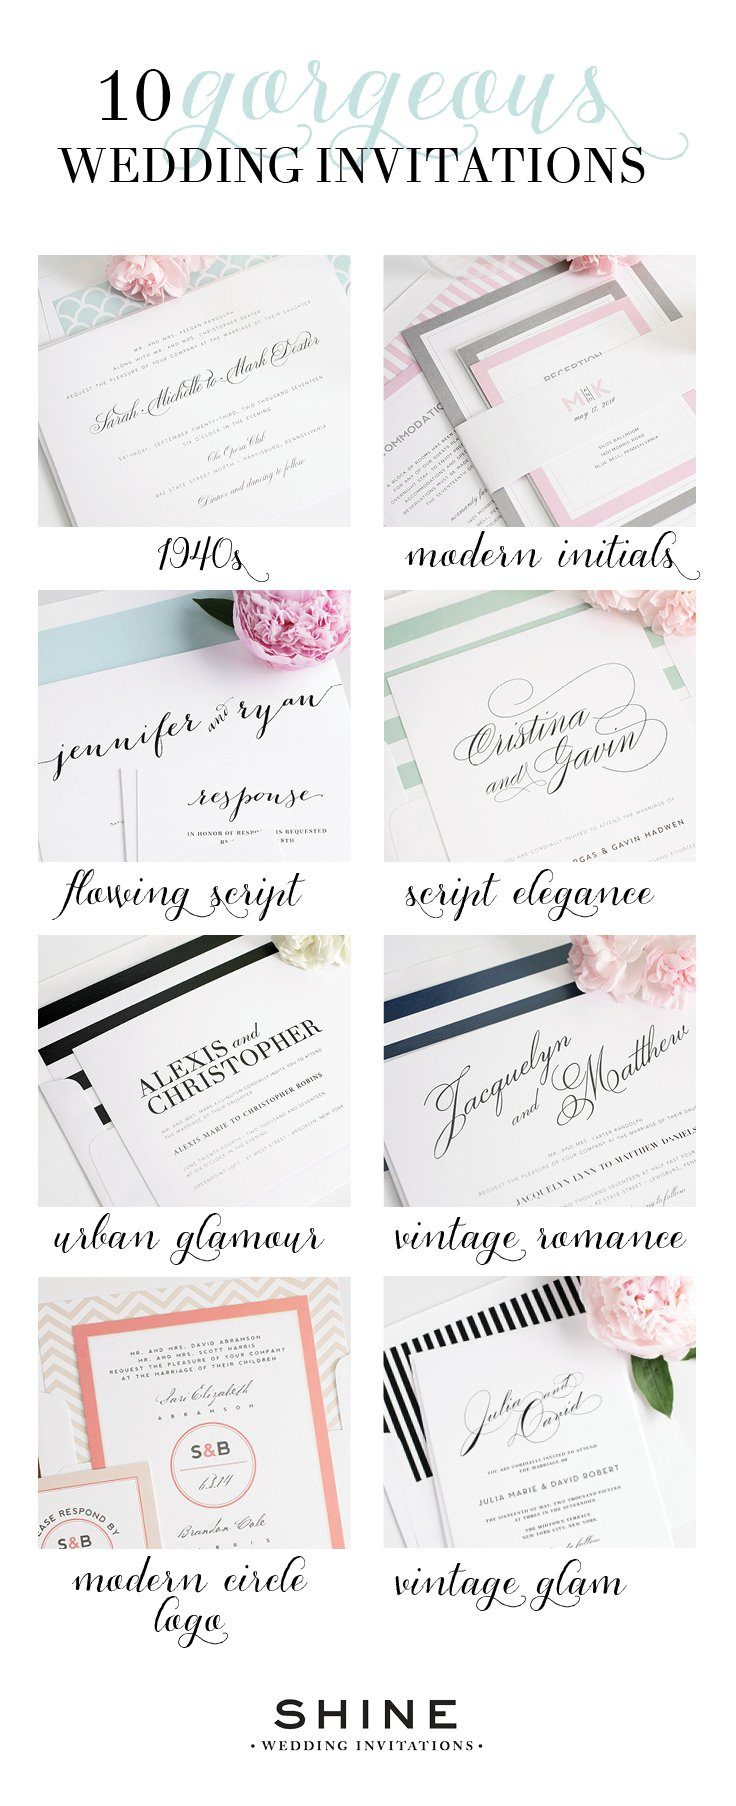 Top 10 Most Loved Wedding Invitations from Shine – Wedding Invitations